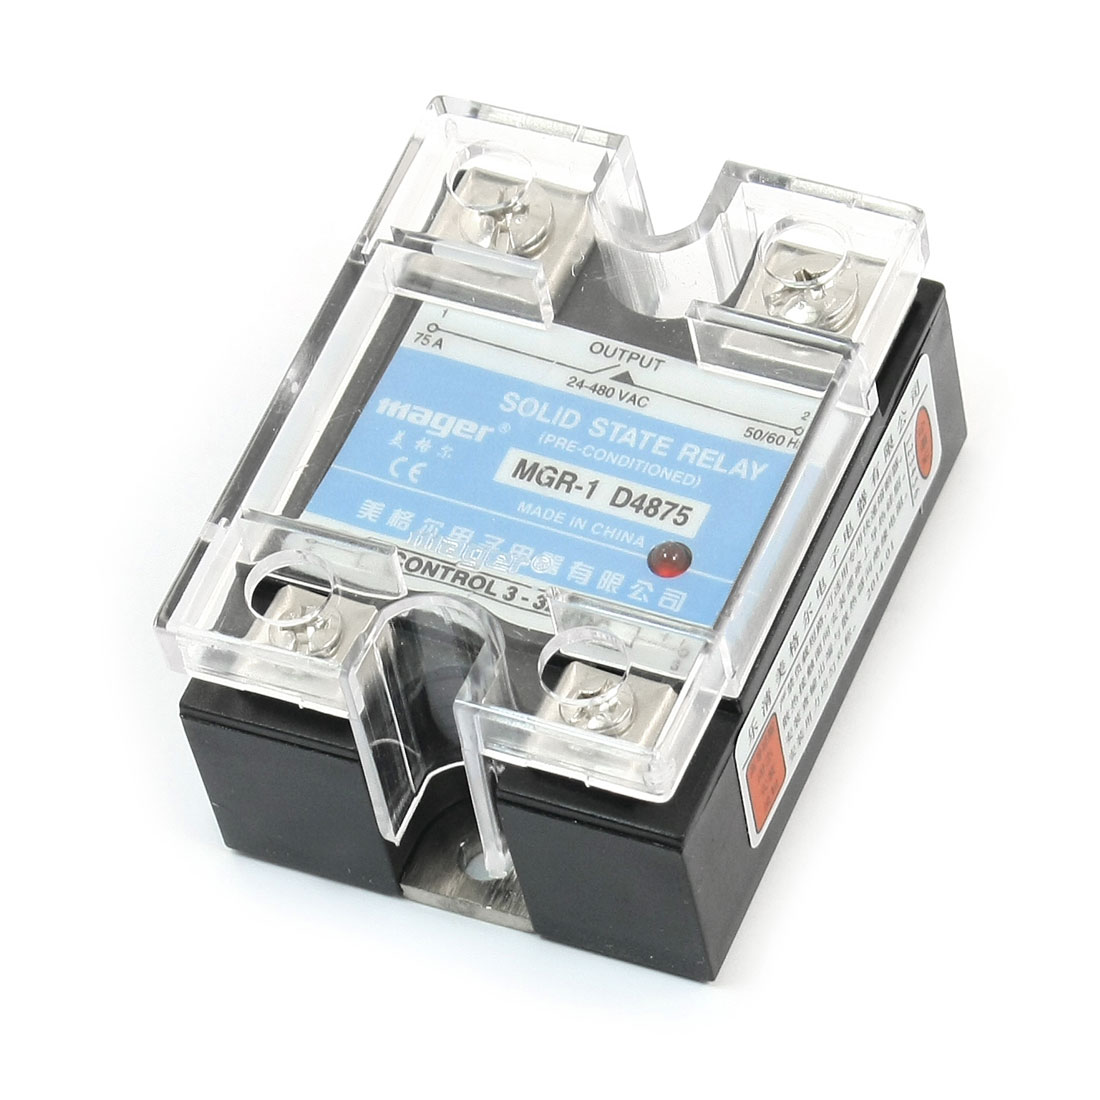 MGR-1 D4875 DC3-32V AC24-480V 75A 4 Screw Terminal Single Phase Normal Open Rectangle Solid State Relay w Clear Cover